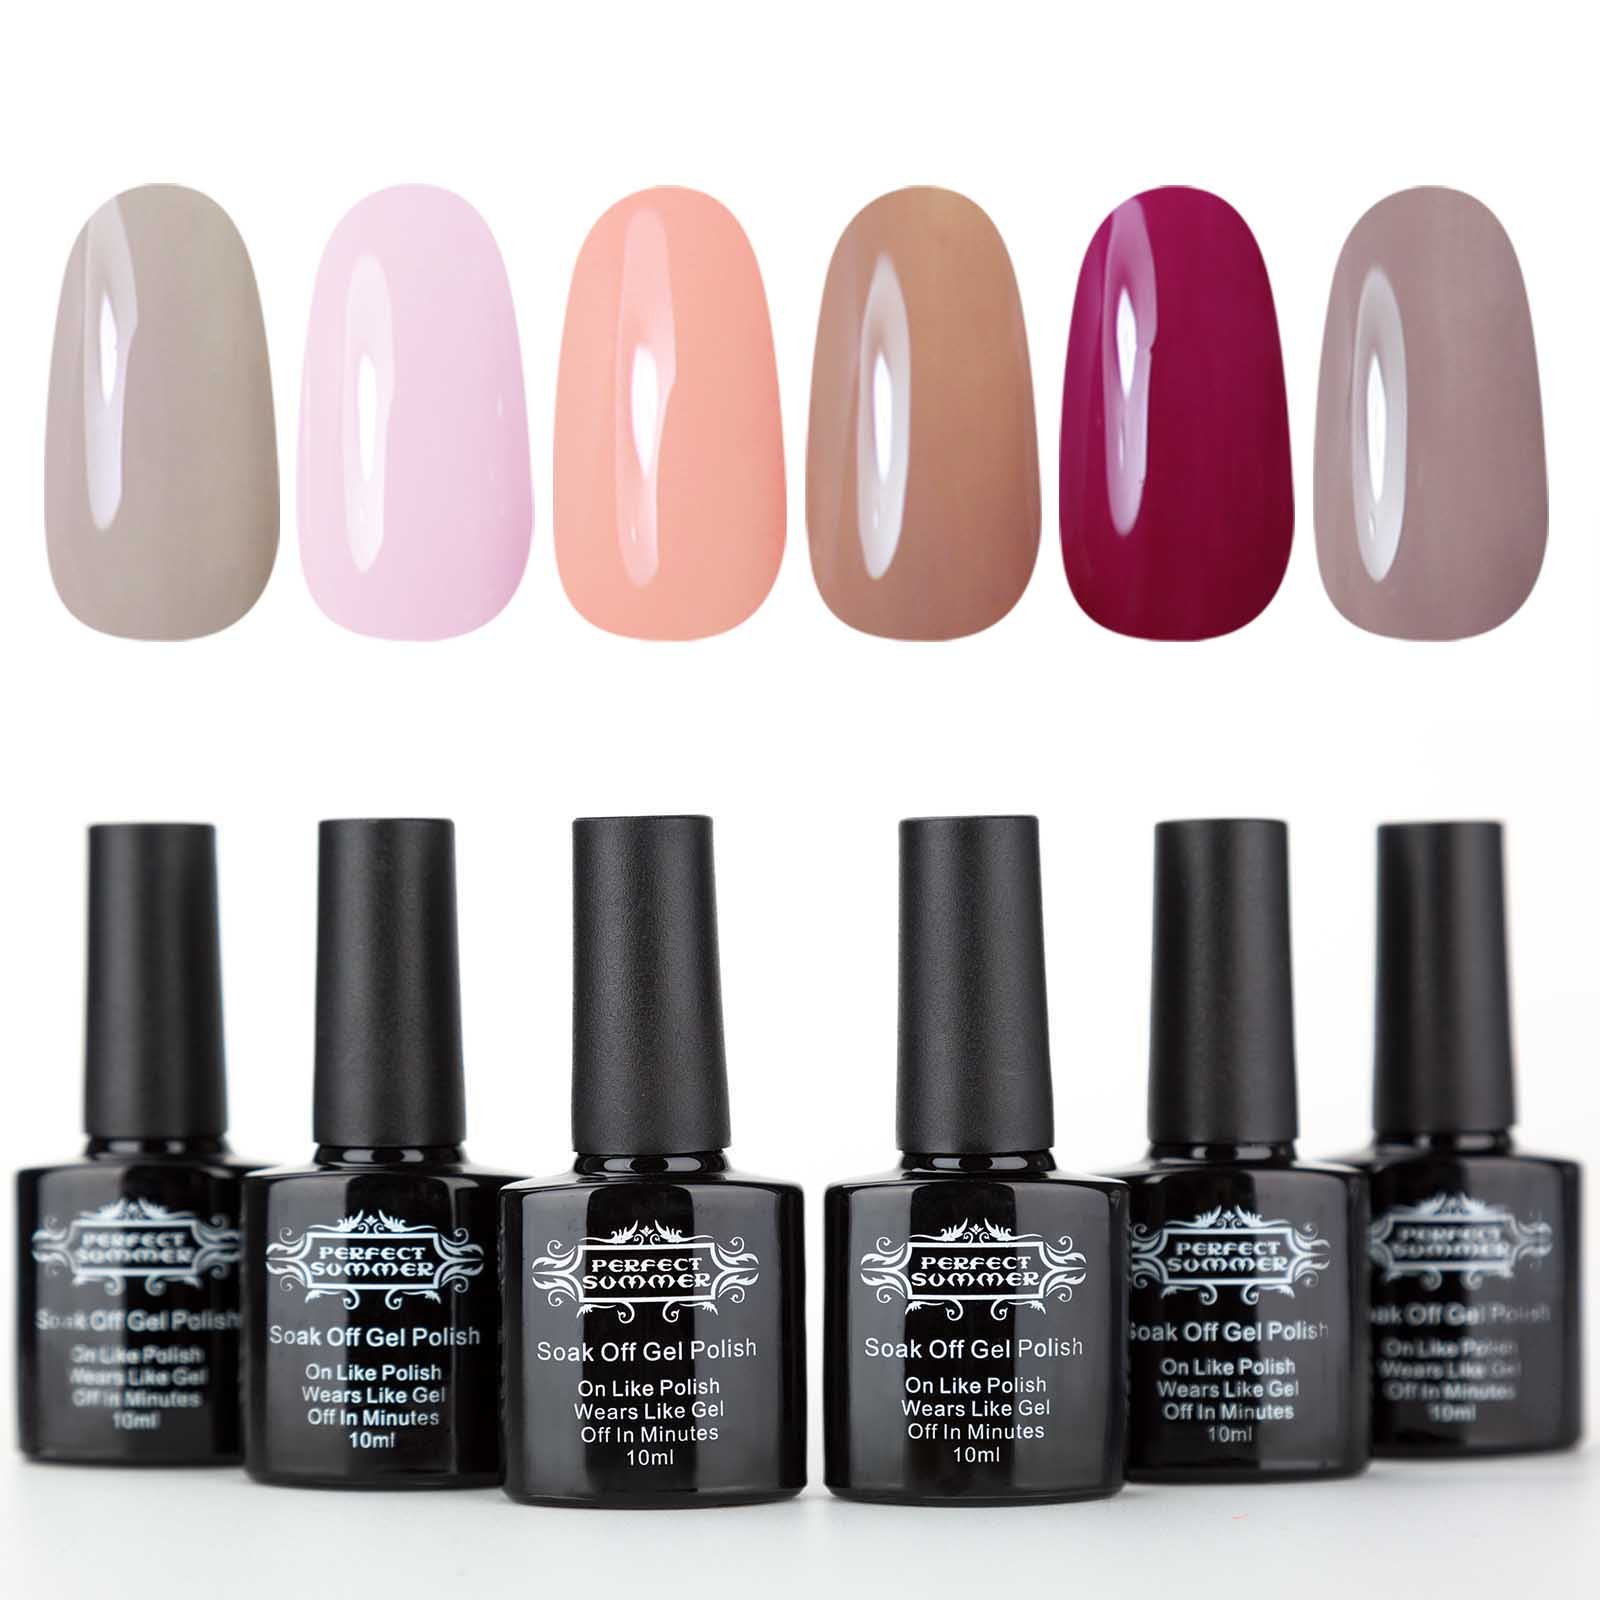 Amazon.com : Perfect Summer UV/LED Gel Nail Polish Kit - Manicure ...